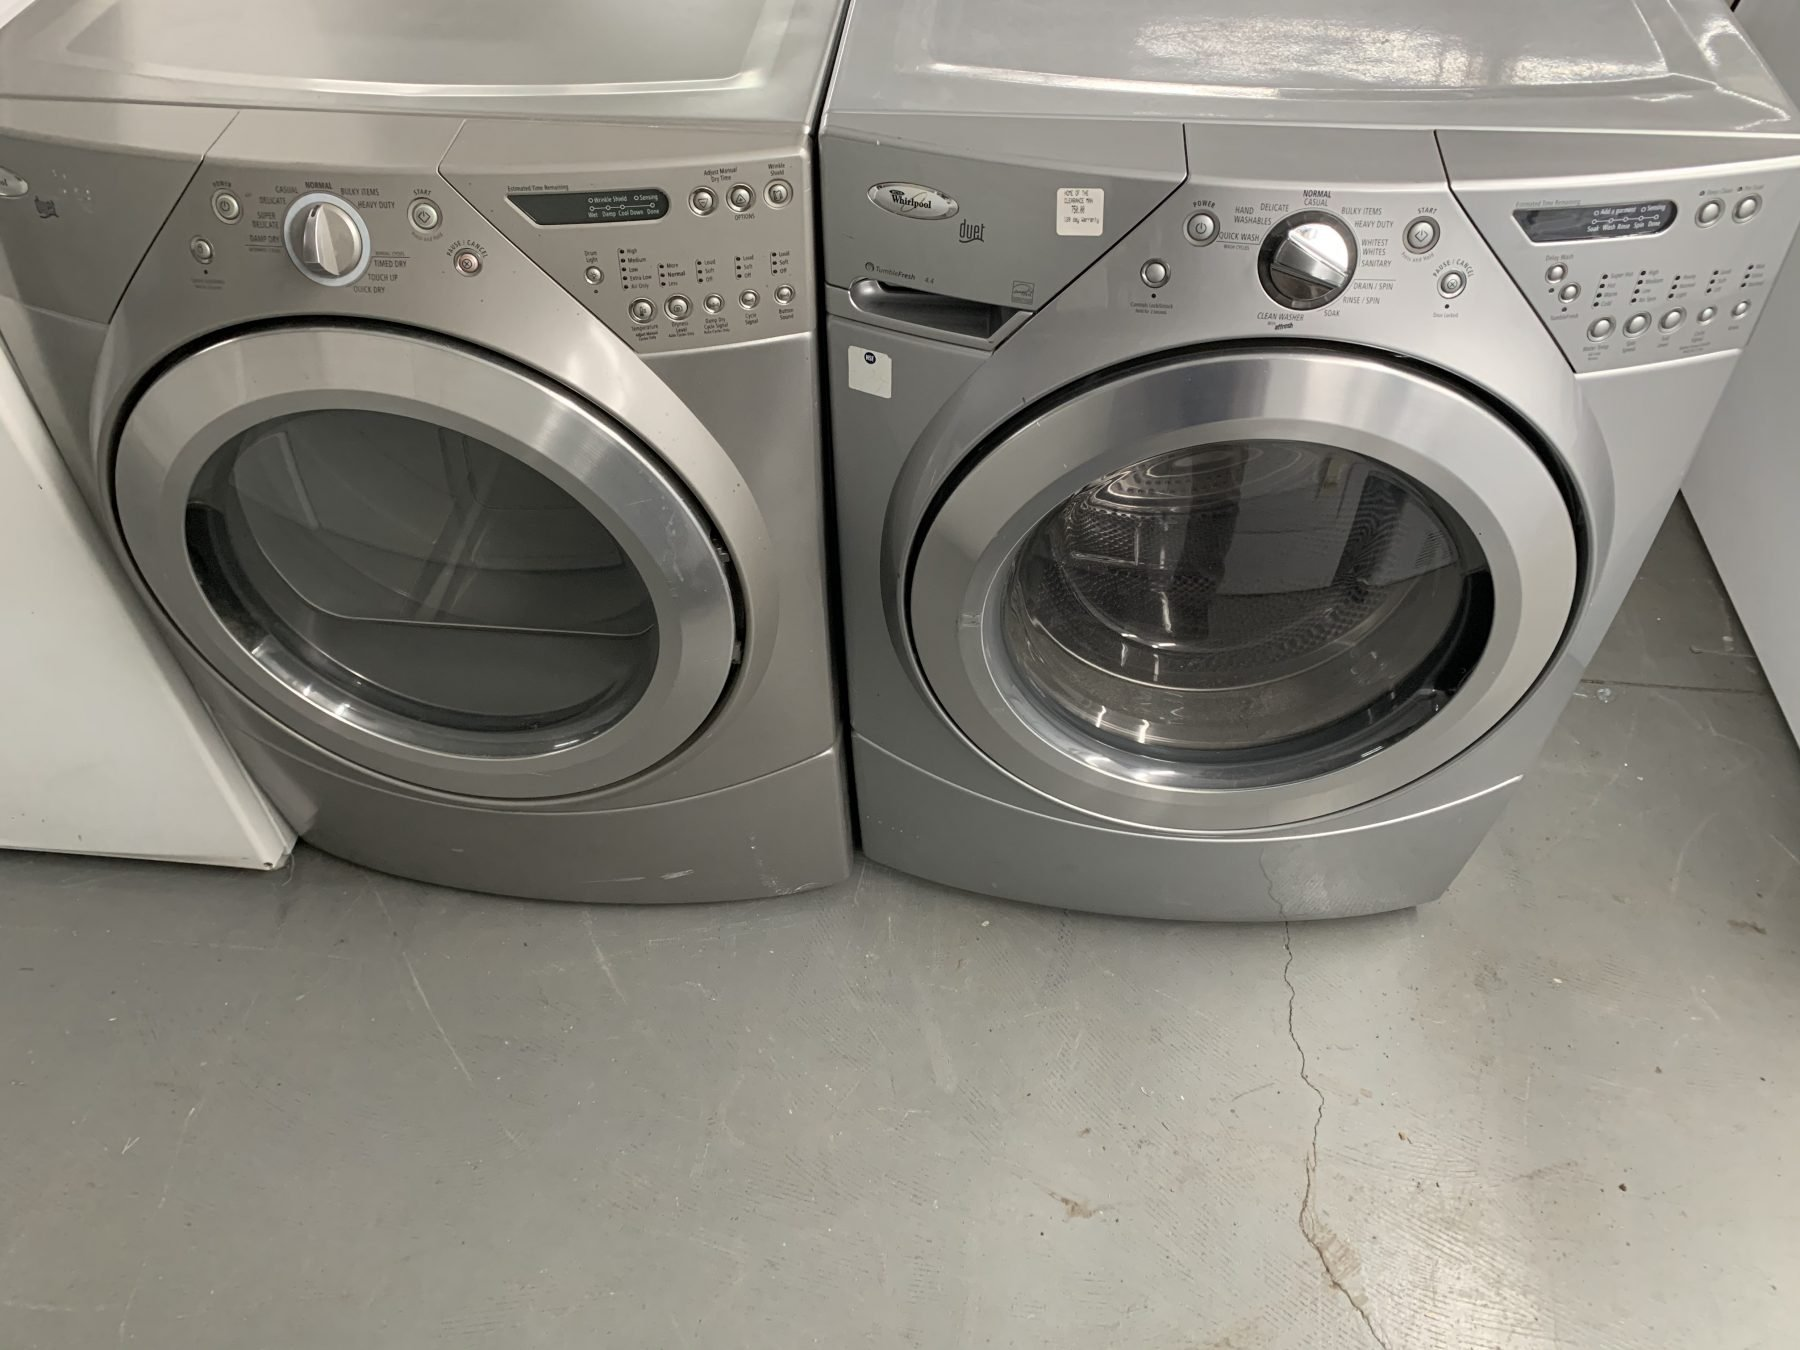 Whirlpool front loader washer dryer set - Clearance Man